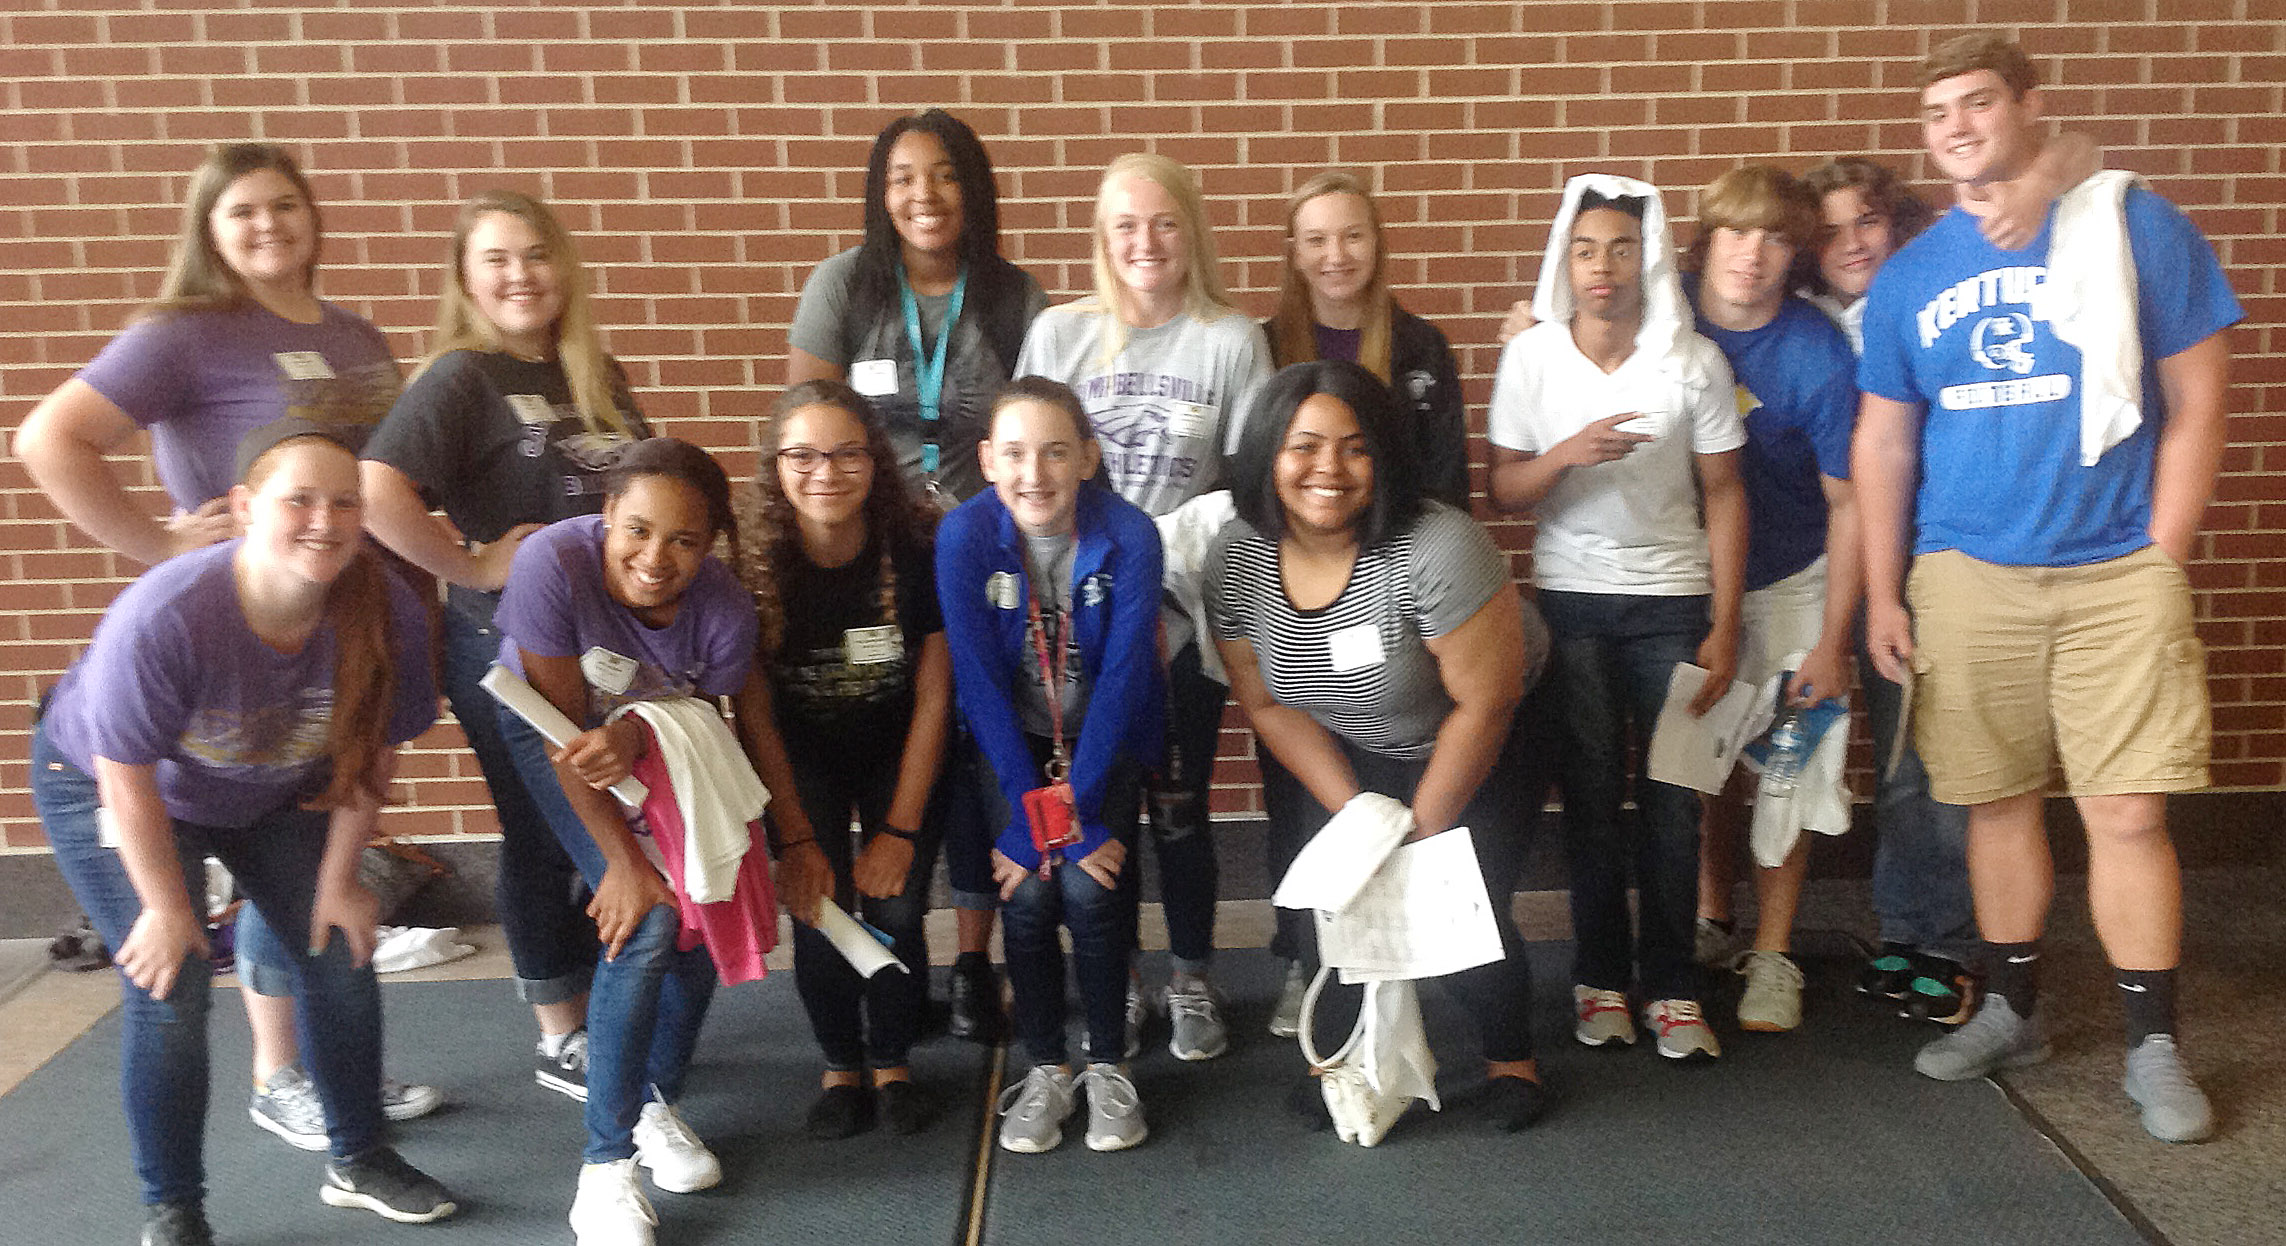 CHS student athletes attended the Kentucky High School Athletic Association's HYPE leadership conference on Monday, Aug. 28. Those attending are, from left, front, sophomores Gracie Miller, Isis Coleman, Taliyah Hazelwood and Zoe McAninch and junior Natalie Caldwell. Back, seniors Vivian Brown and Haley Fitch, juniors Malaya Hoskins and Abbie Dicken, senior Madison Dial and juniors Davon Cecil, Tristian Johnson, Treyce Mattingly and Lane Bottoms.